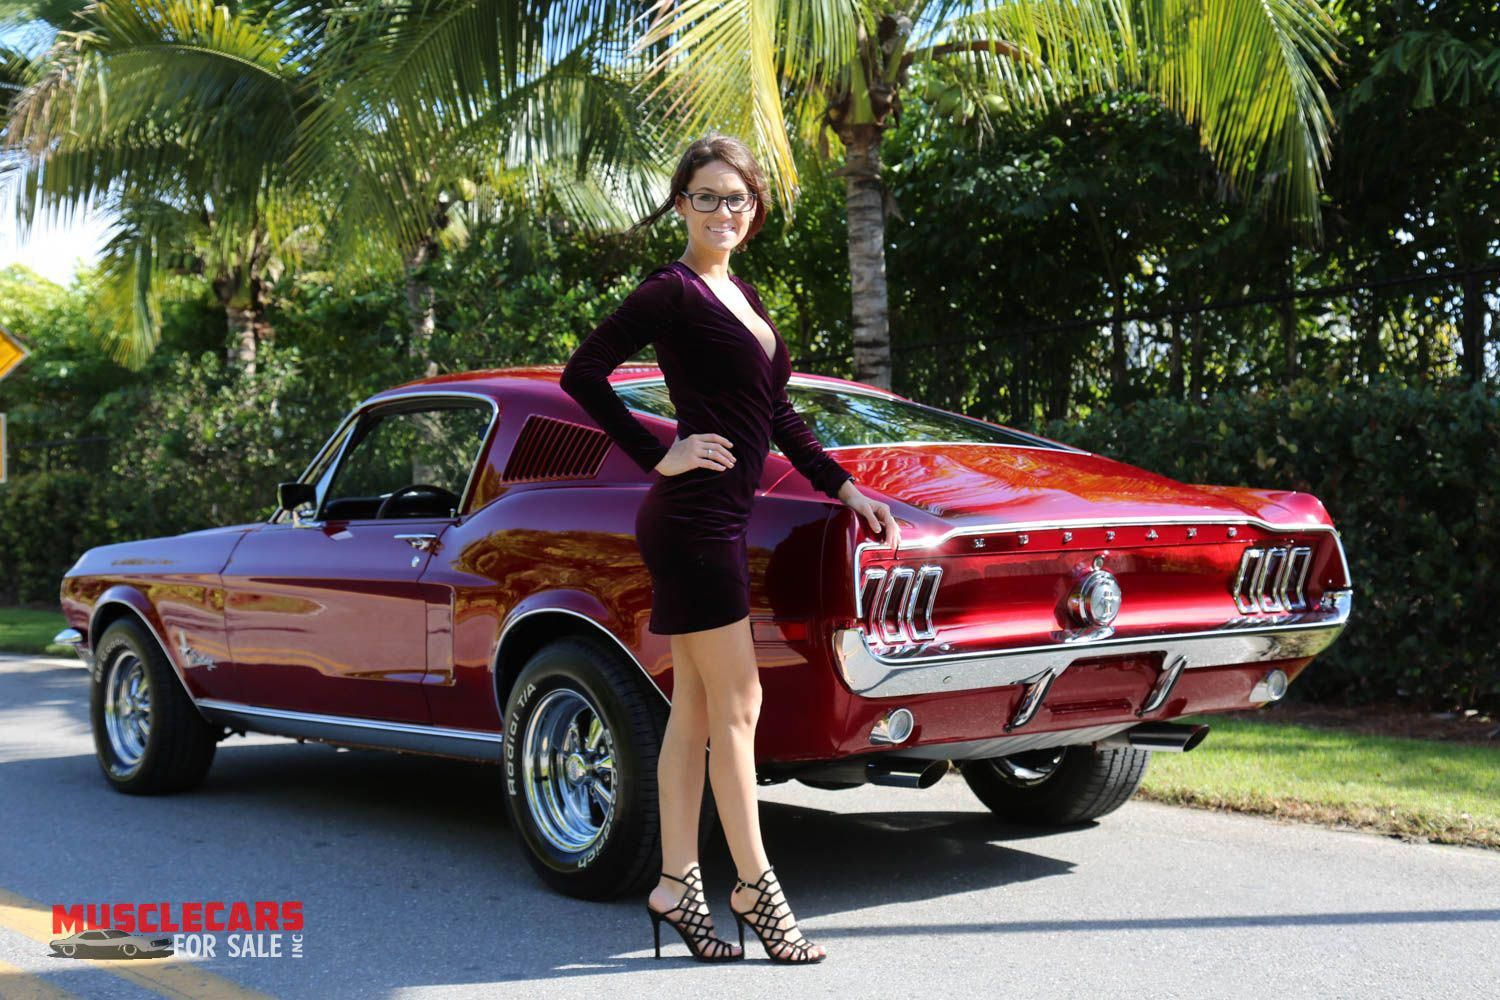 Ford Classic Cars For Sale In Sri Lanka Fordclassiccars With